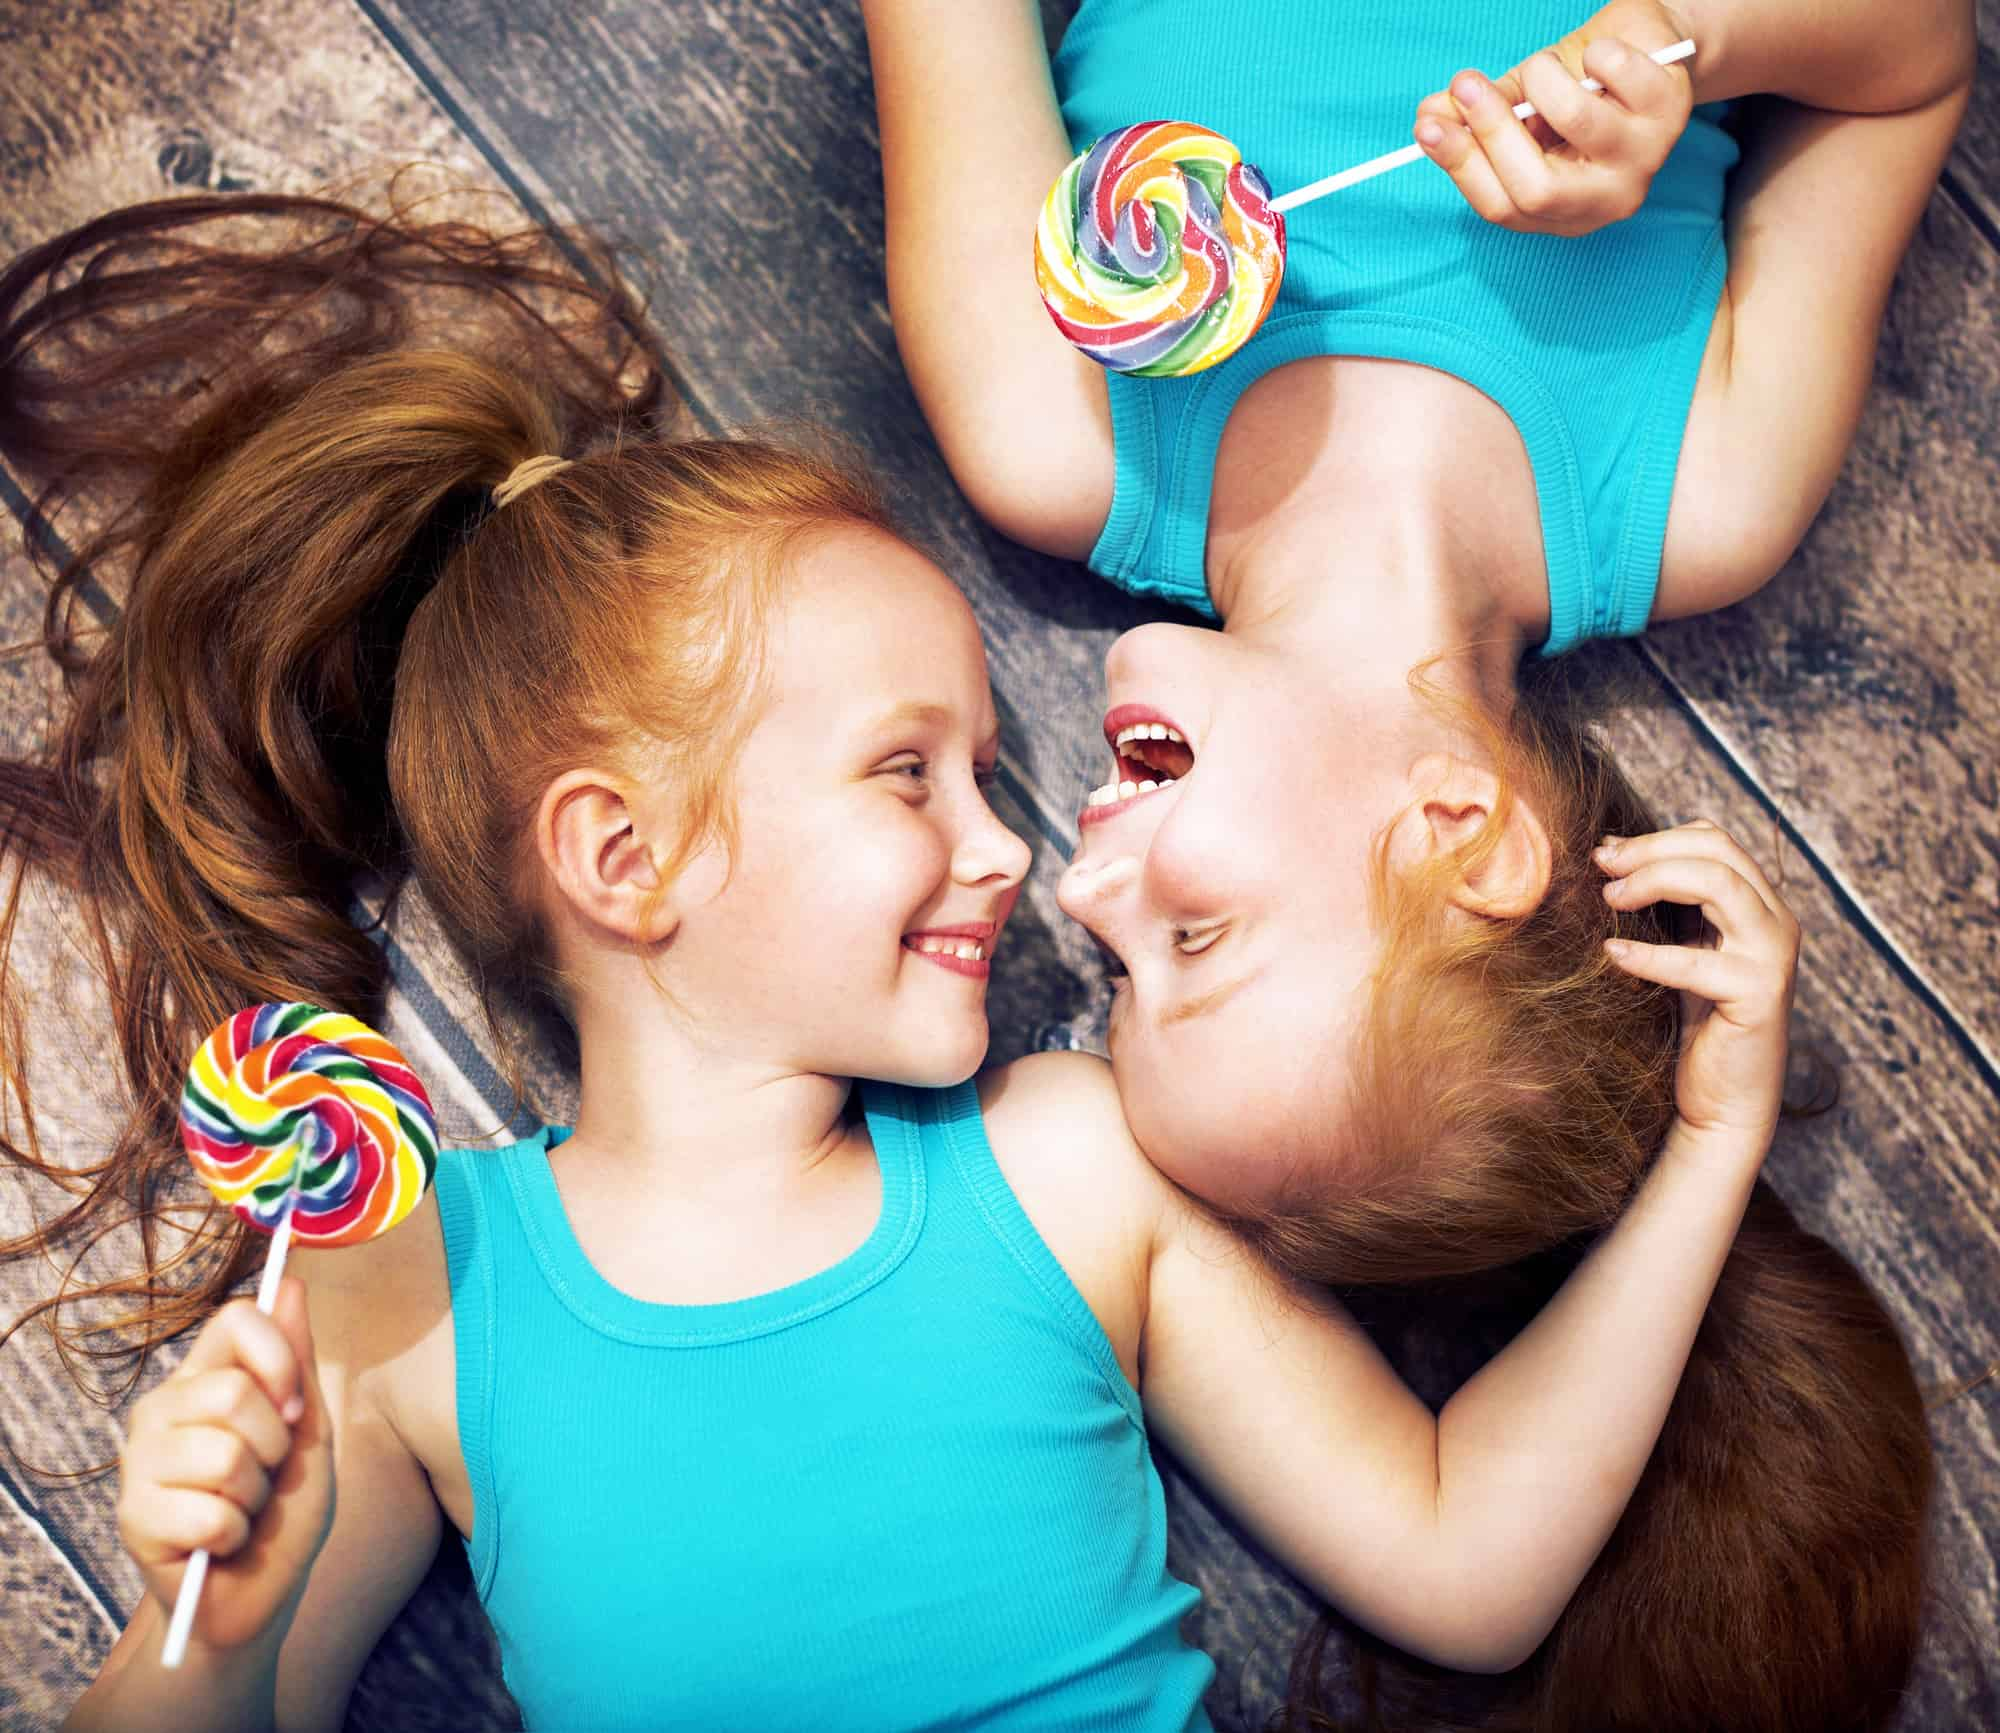 twin sisters holding colorful lollipops